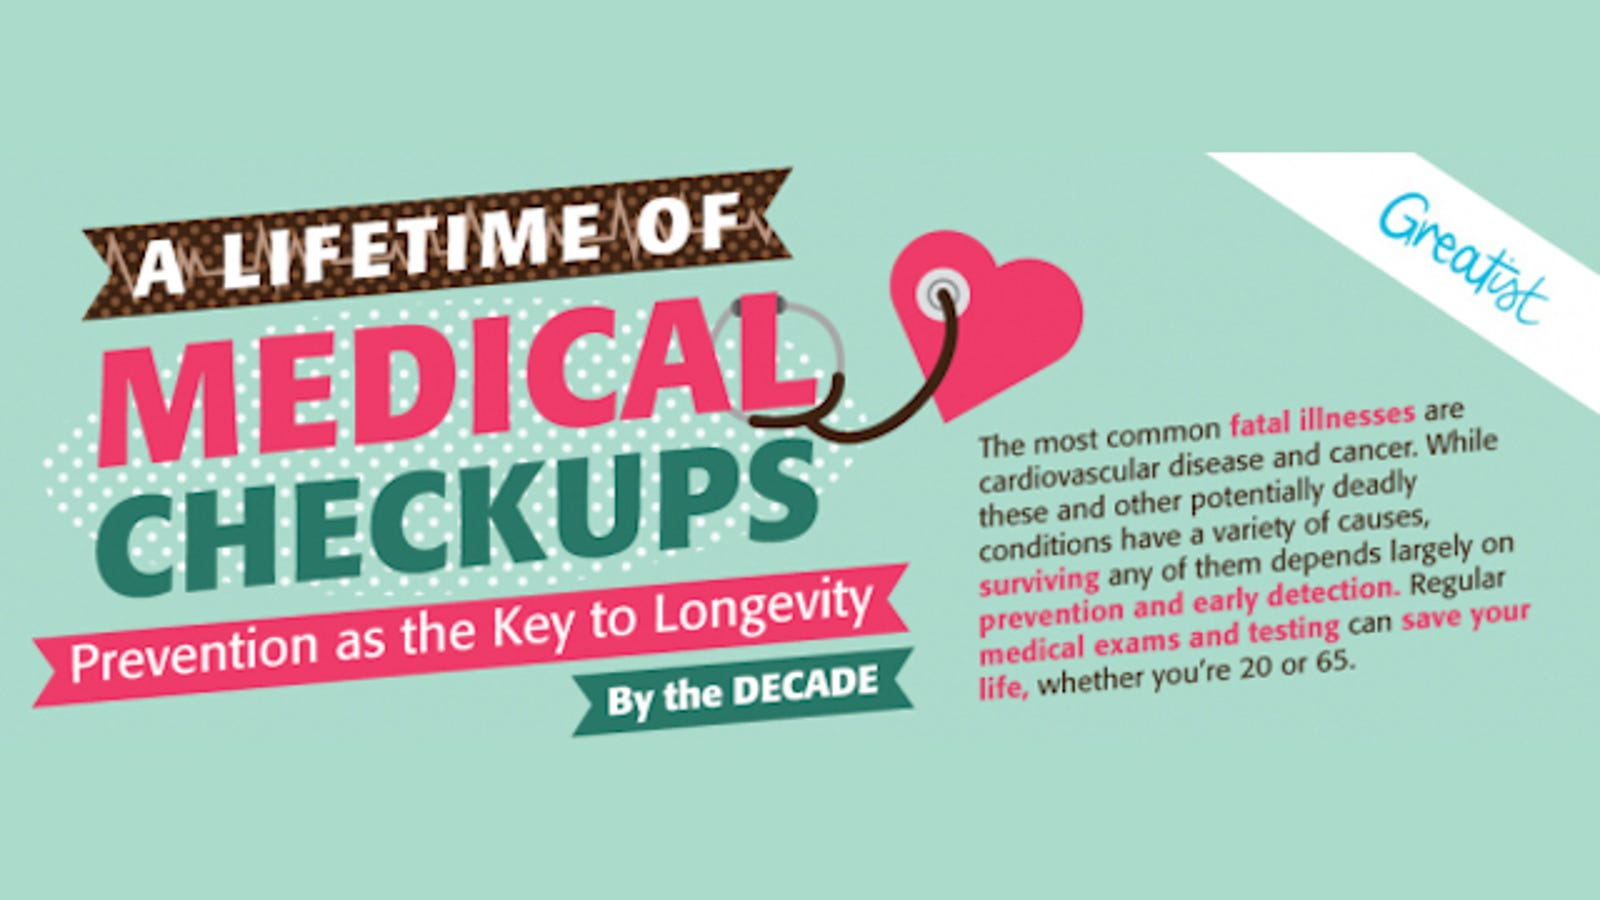 The Medical Checkups You Should Get for Each Decade of Your Life